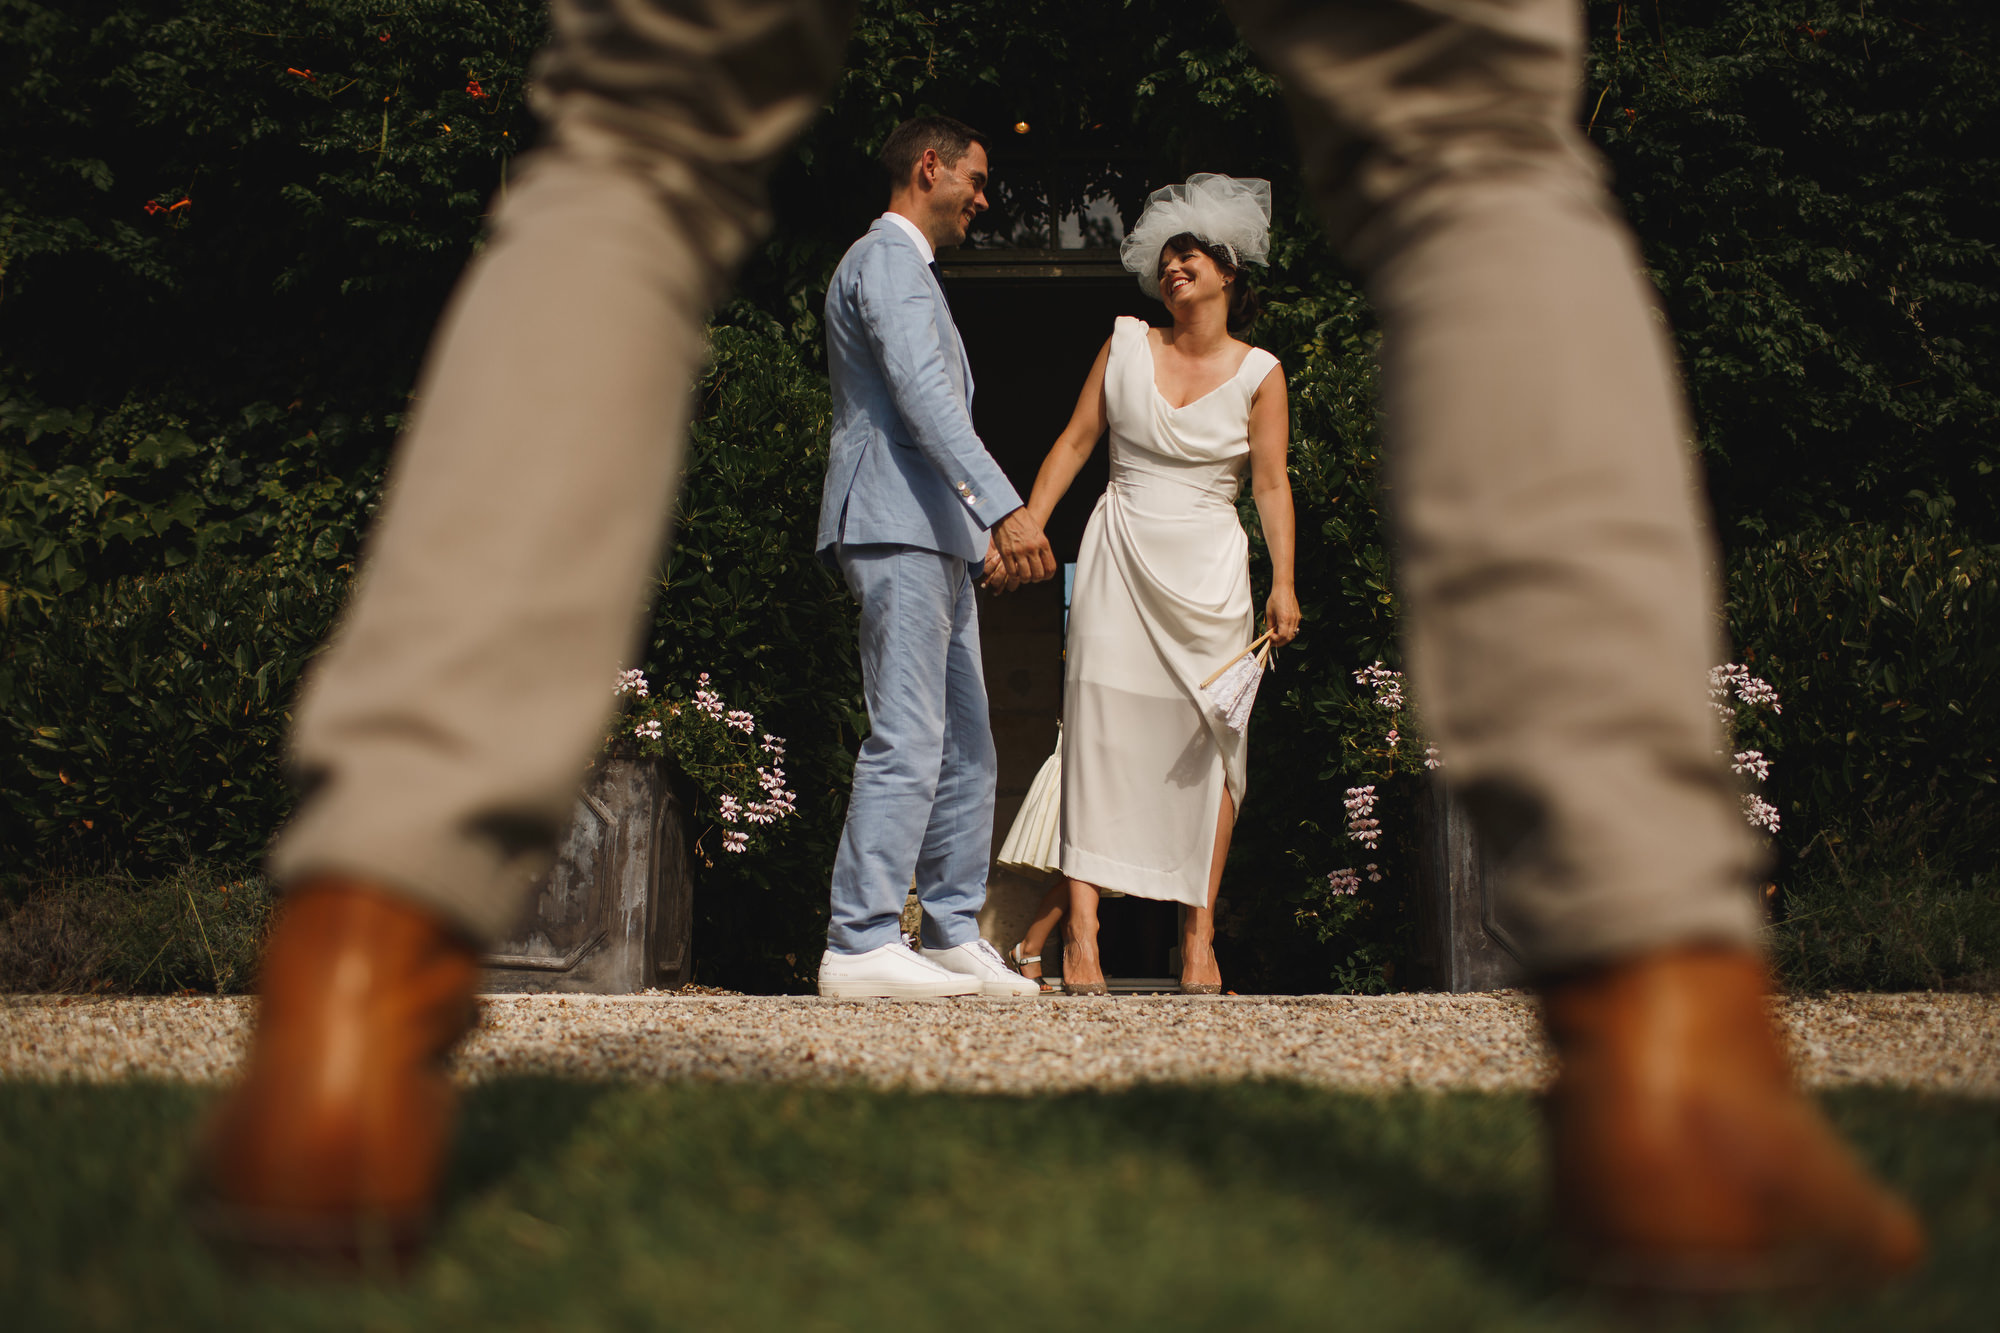 Chateau Rigaud Wedding - Dordogne Destination Wedding Photographer